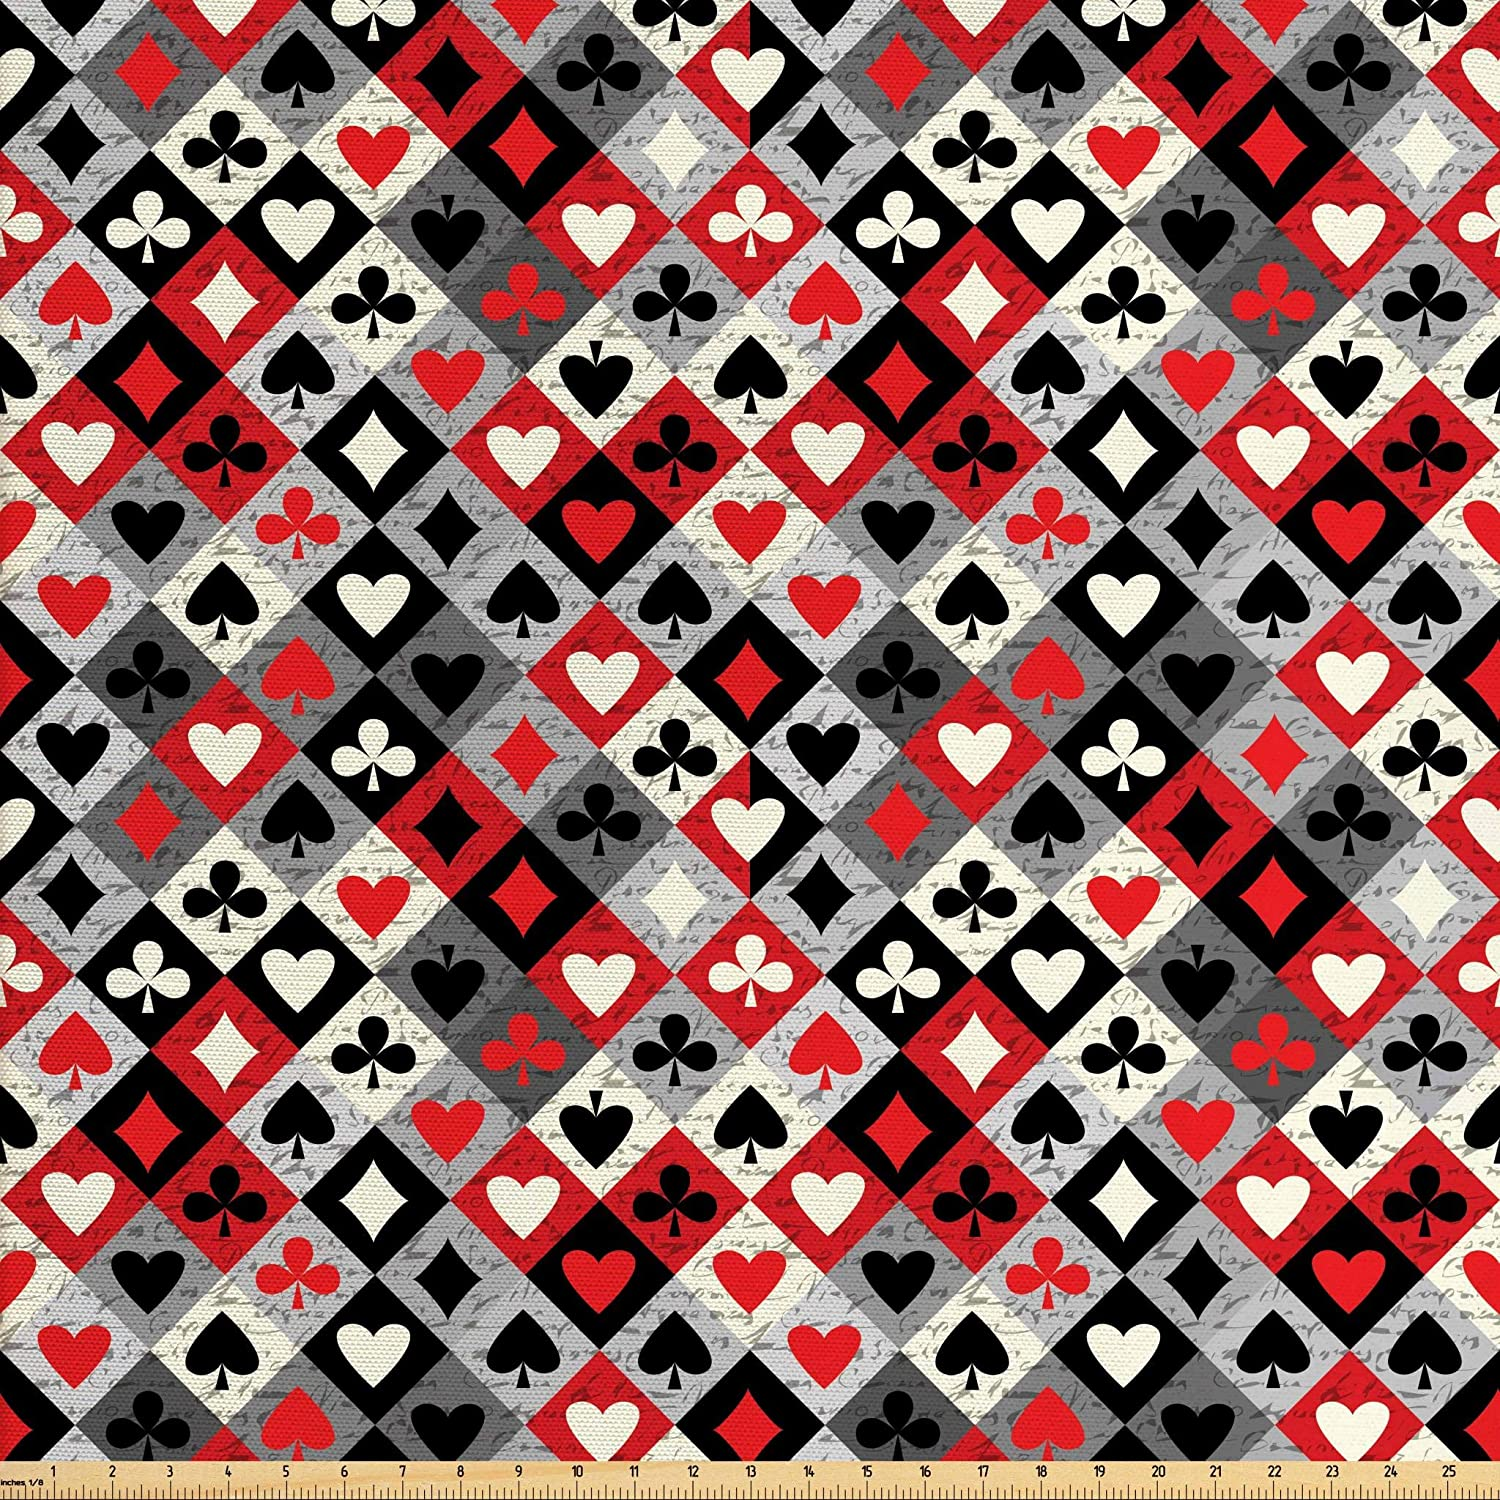 Lunarable Casino Fabric by The Yard, Checkered Rhombus Pattern with Playing Card Grunge Display Gaming Club Theme, Decorative Fabric for Upholstery and Home Accents, 2 Yards, Black Red